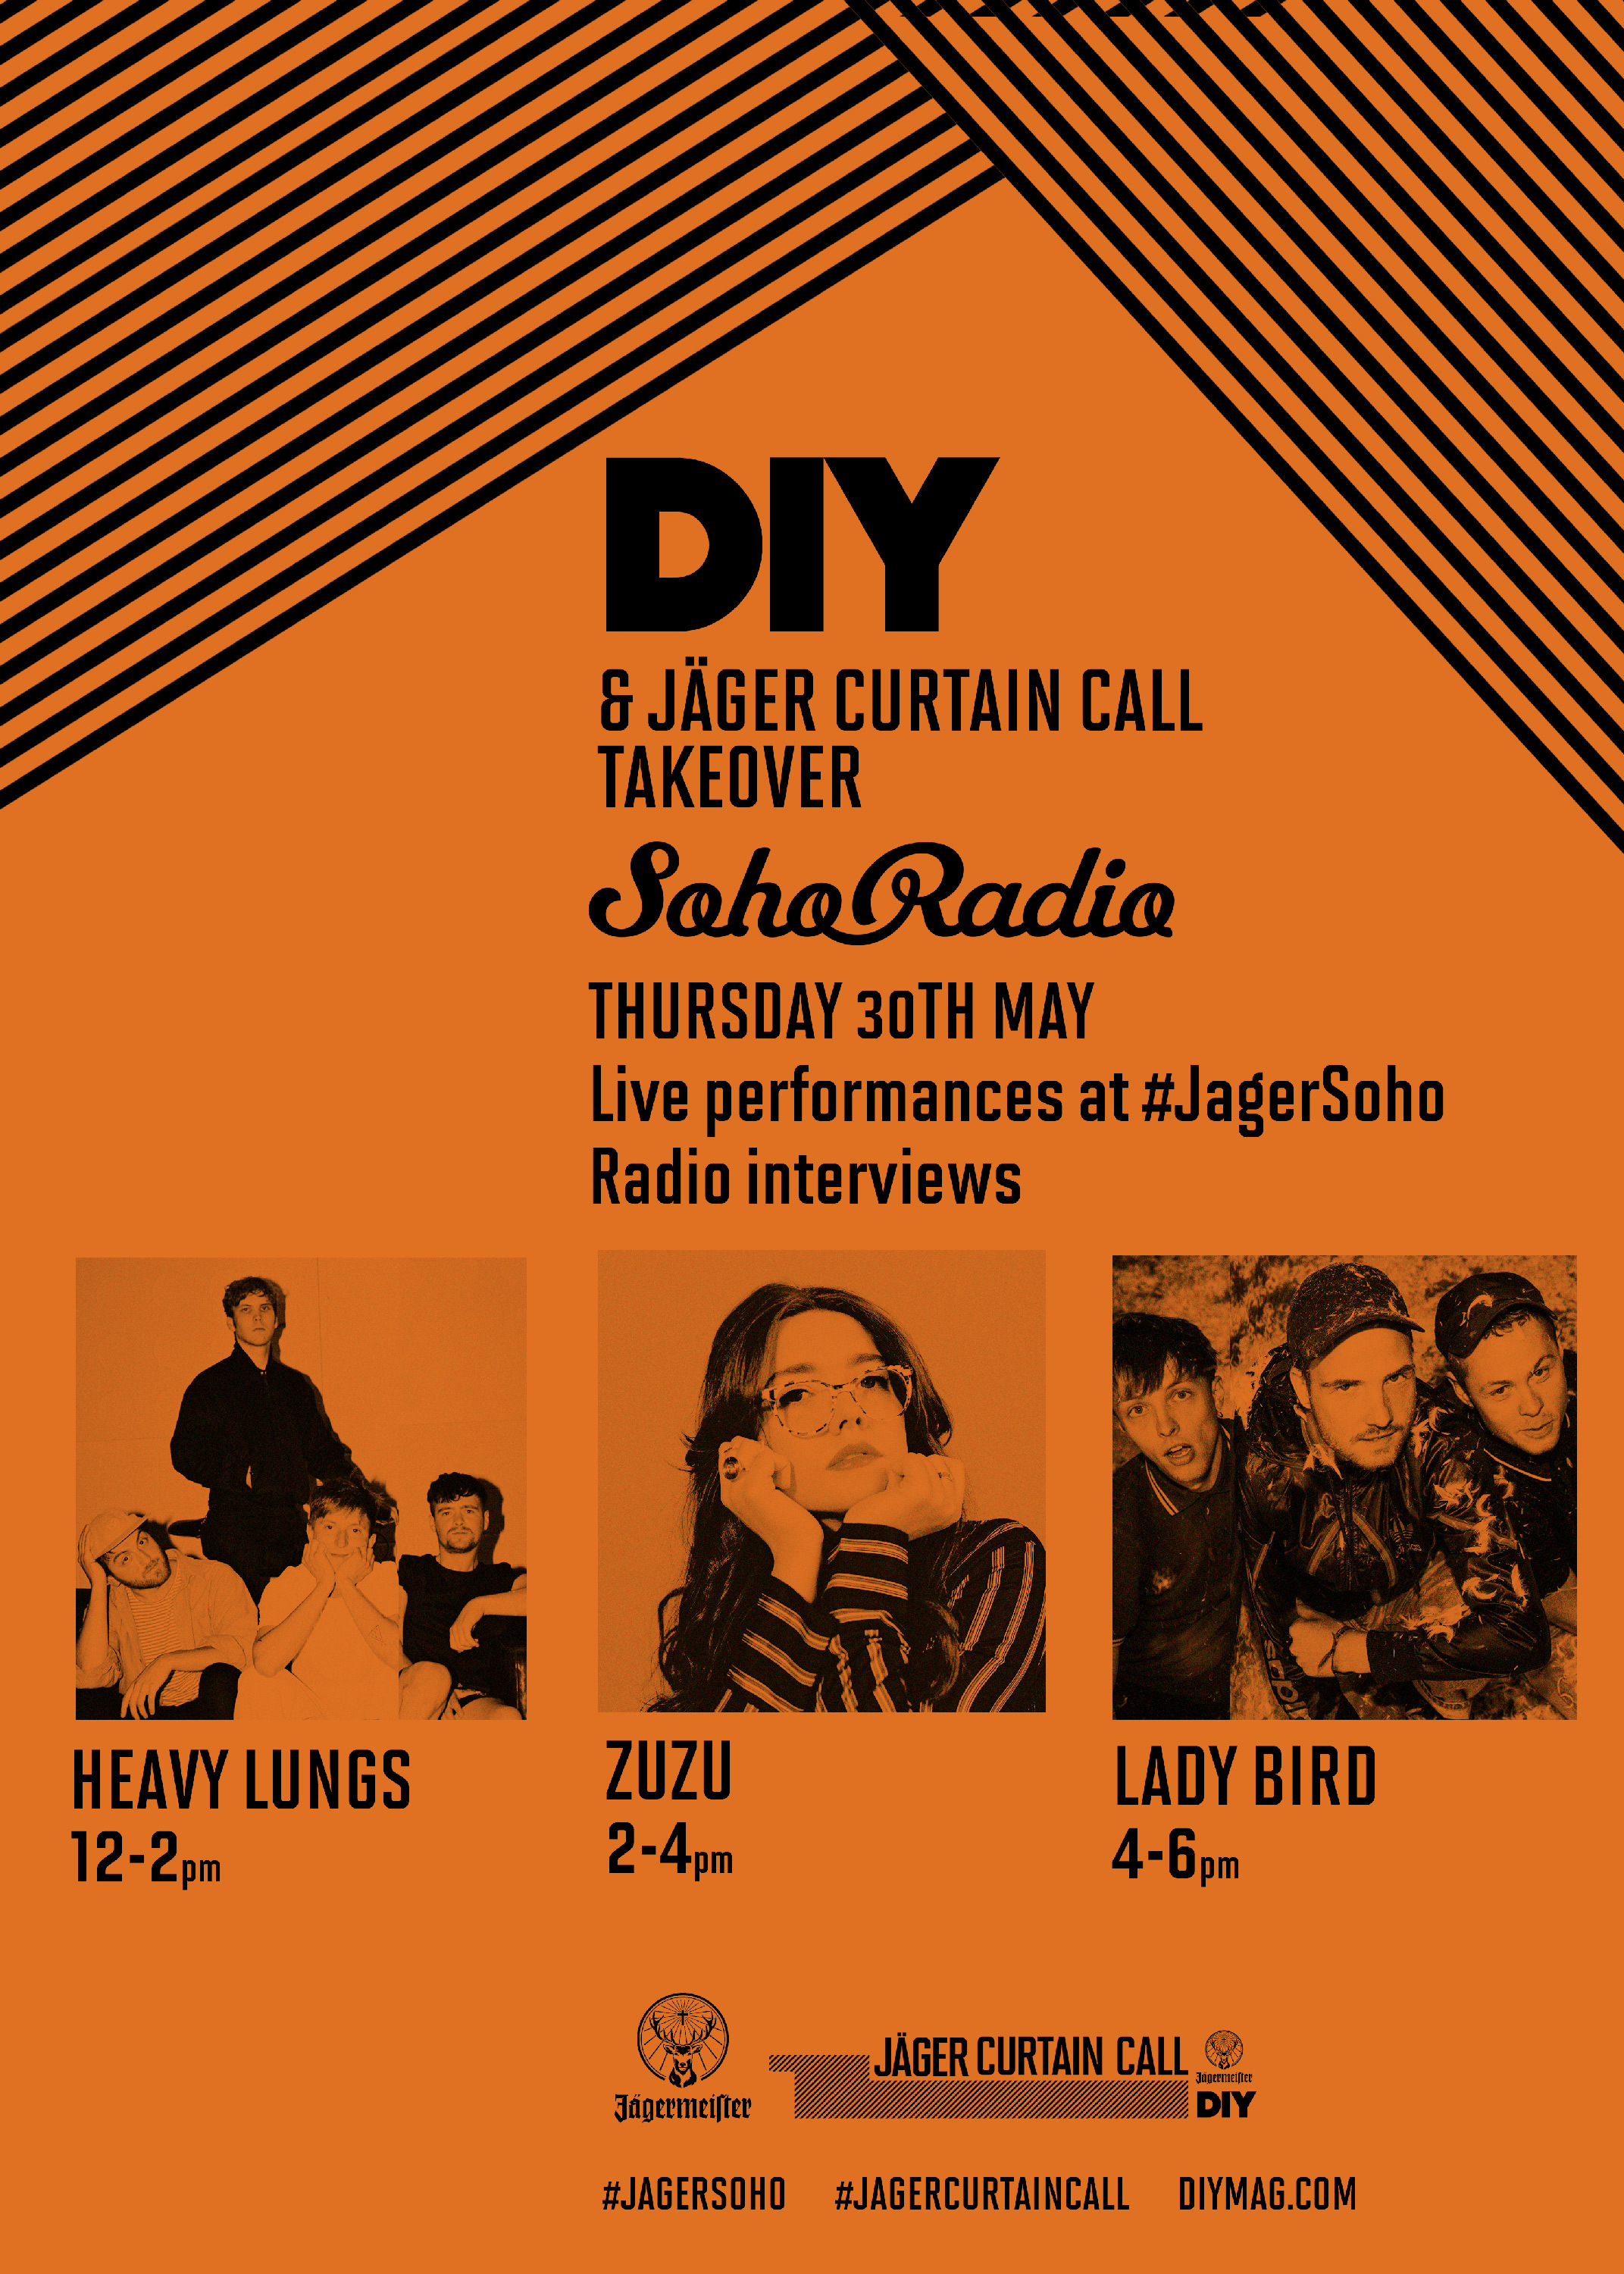 Heavy Lungs, Lady Bird & Zuzu to appear on Soho Radio as part of Jäger Curtain Call